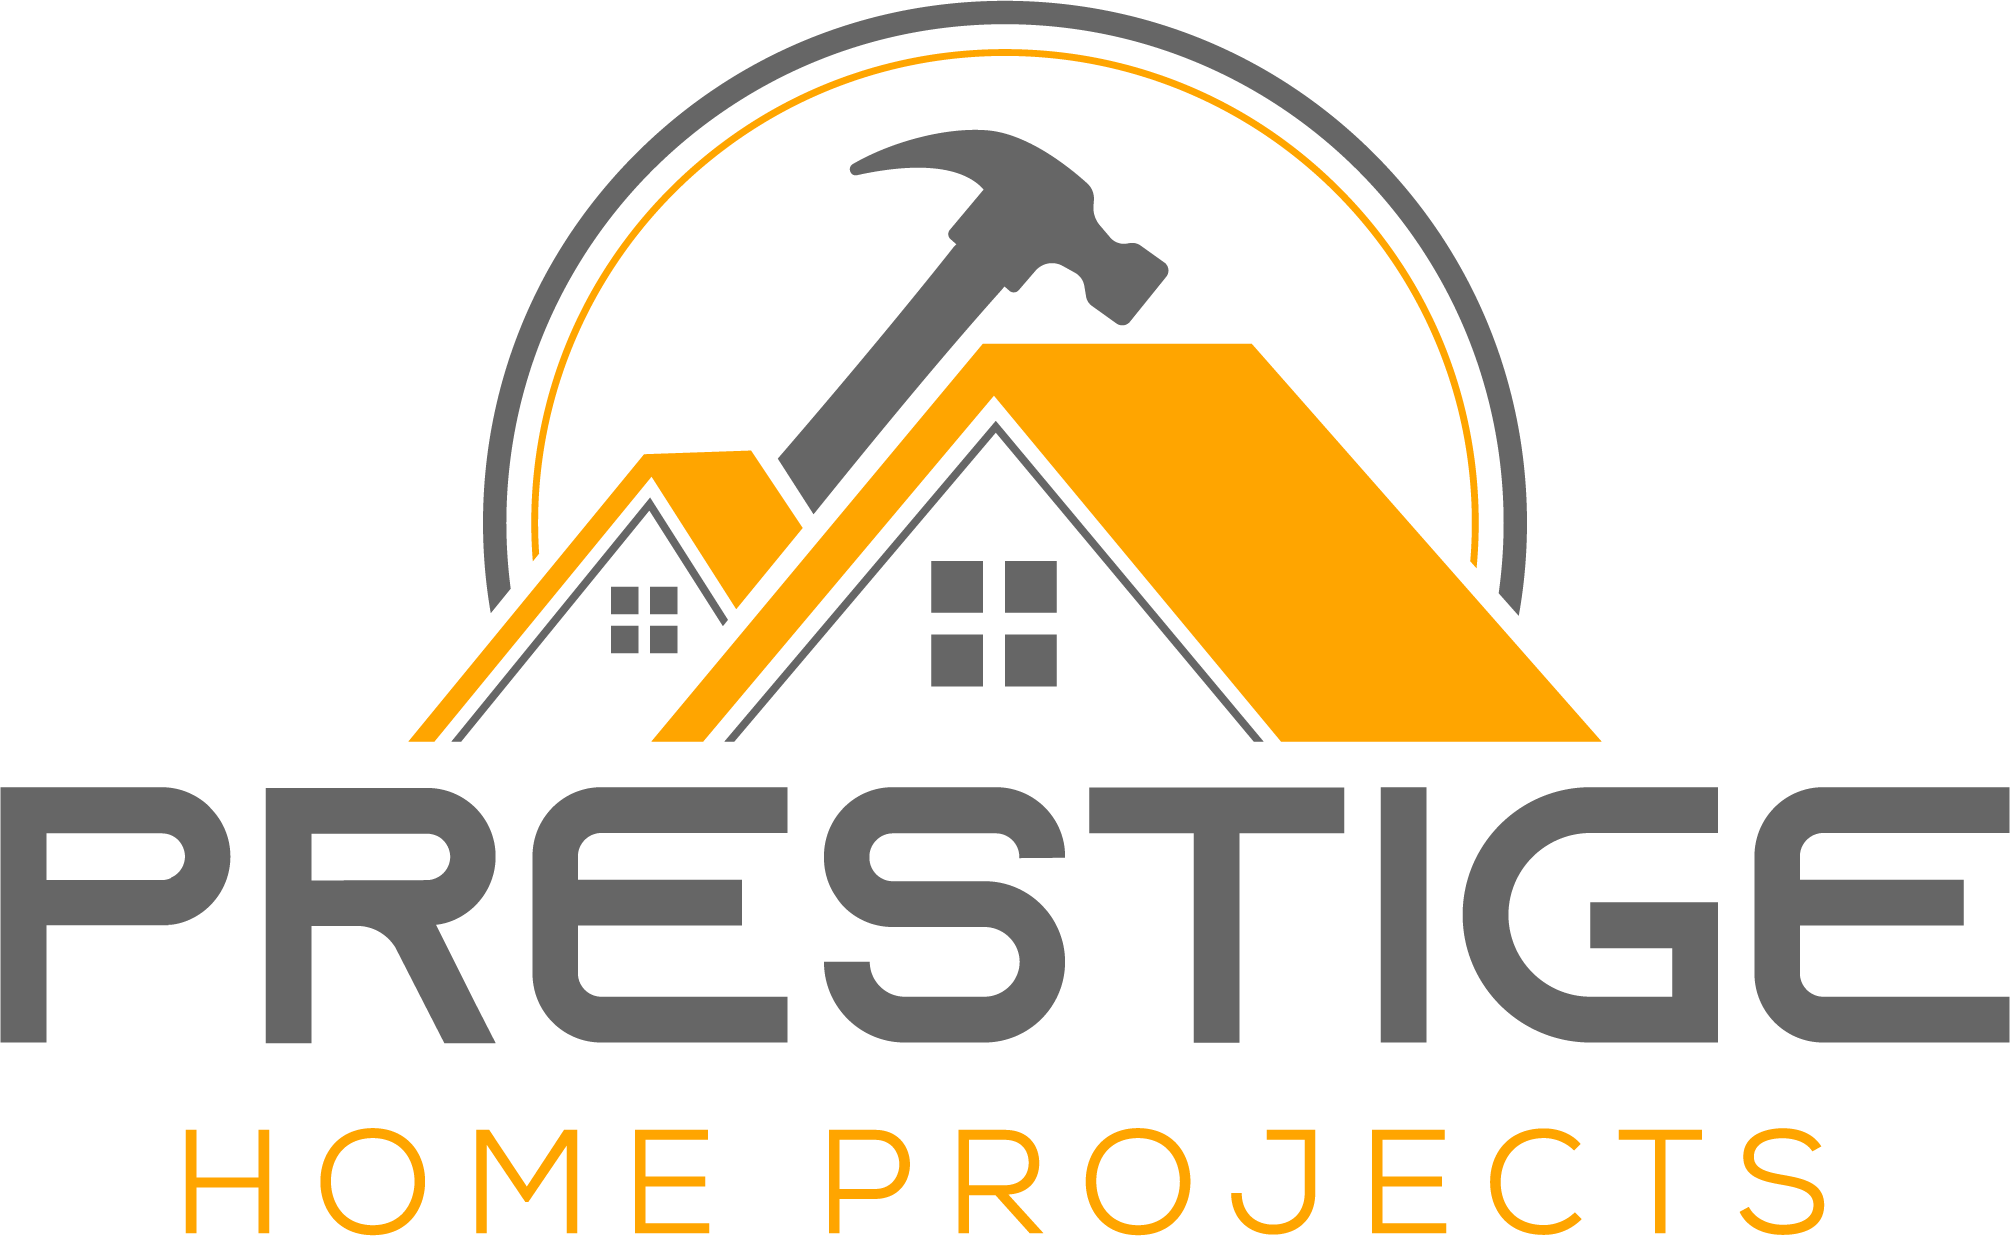 prestige home projects